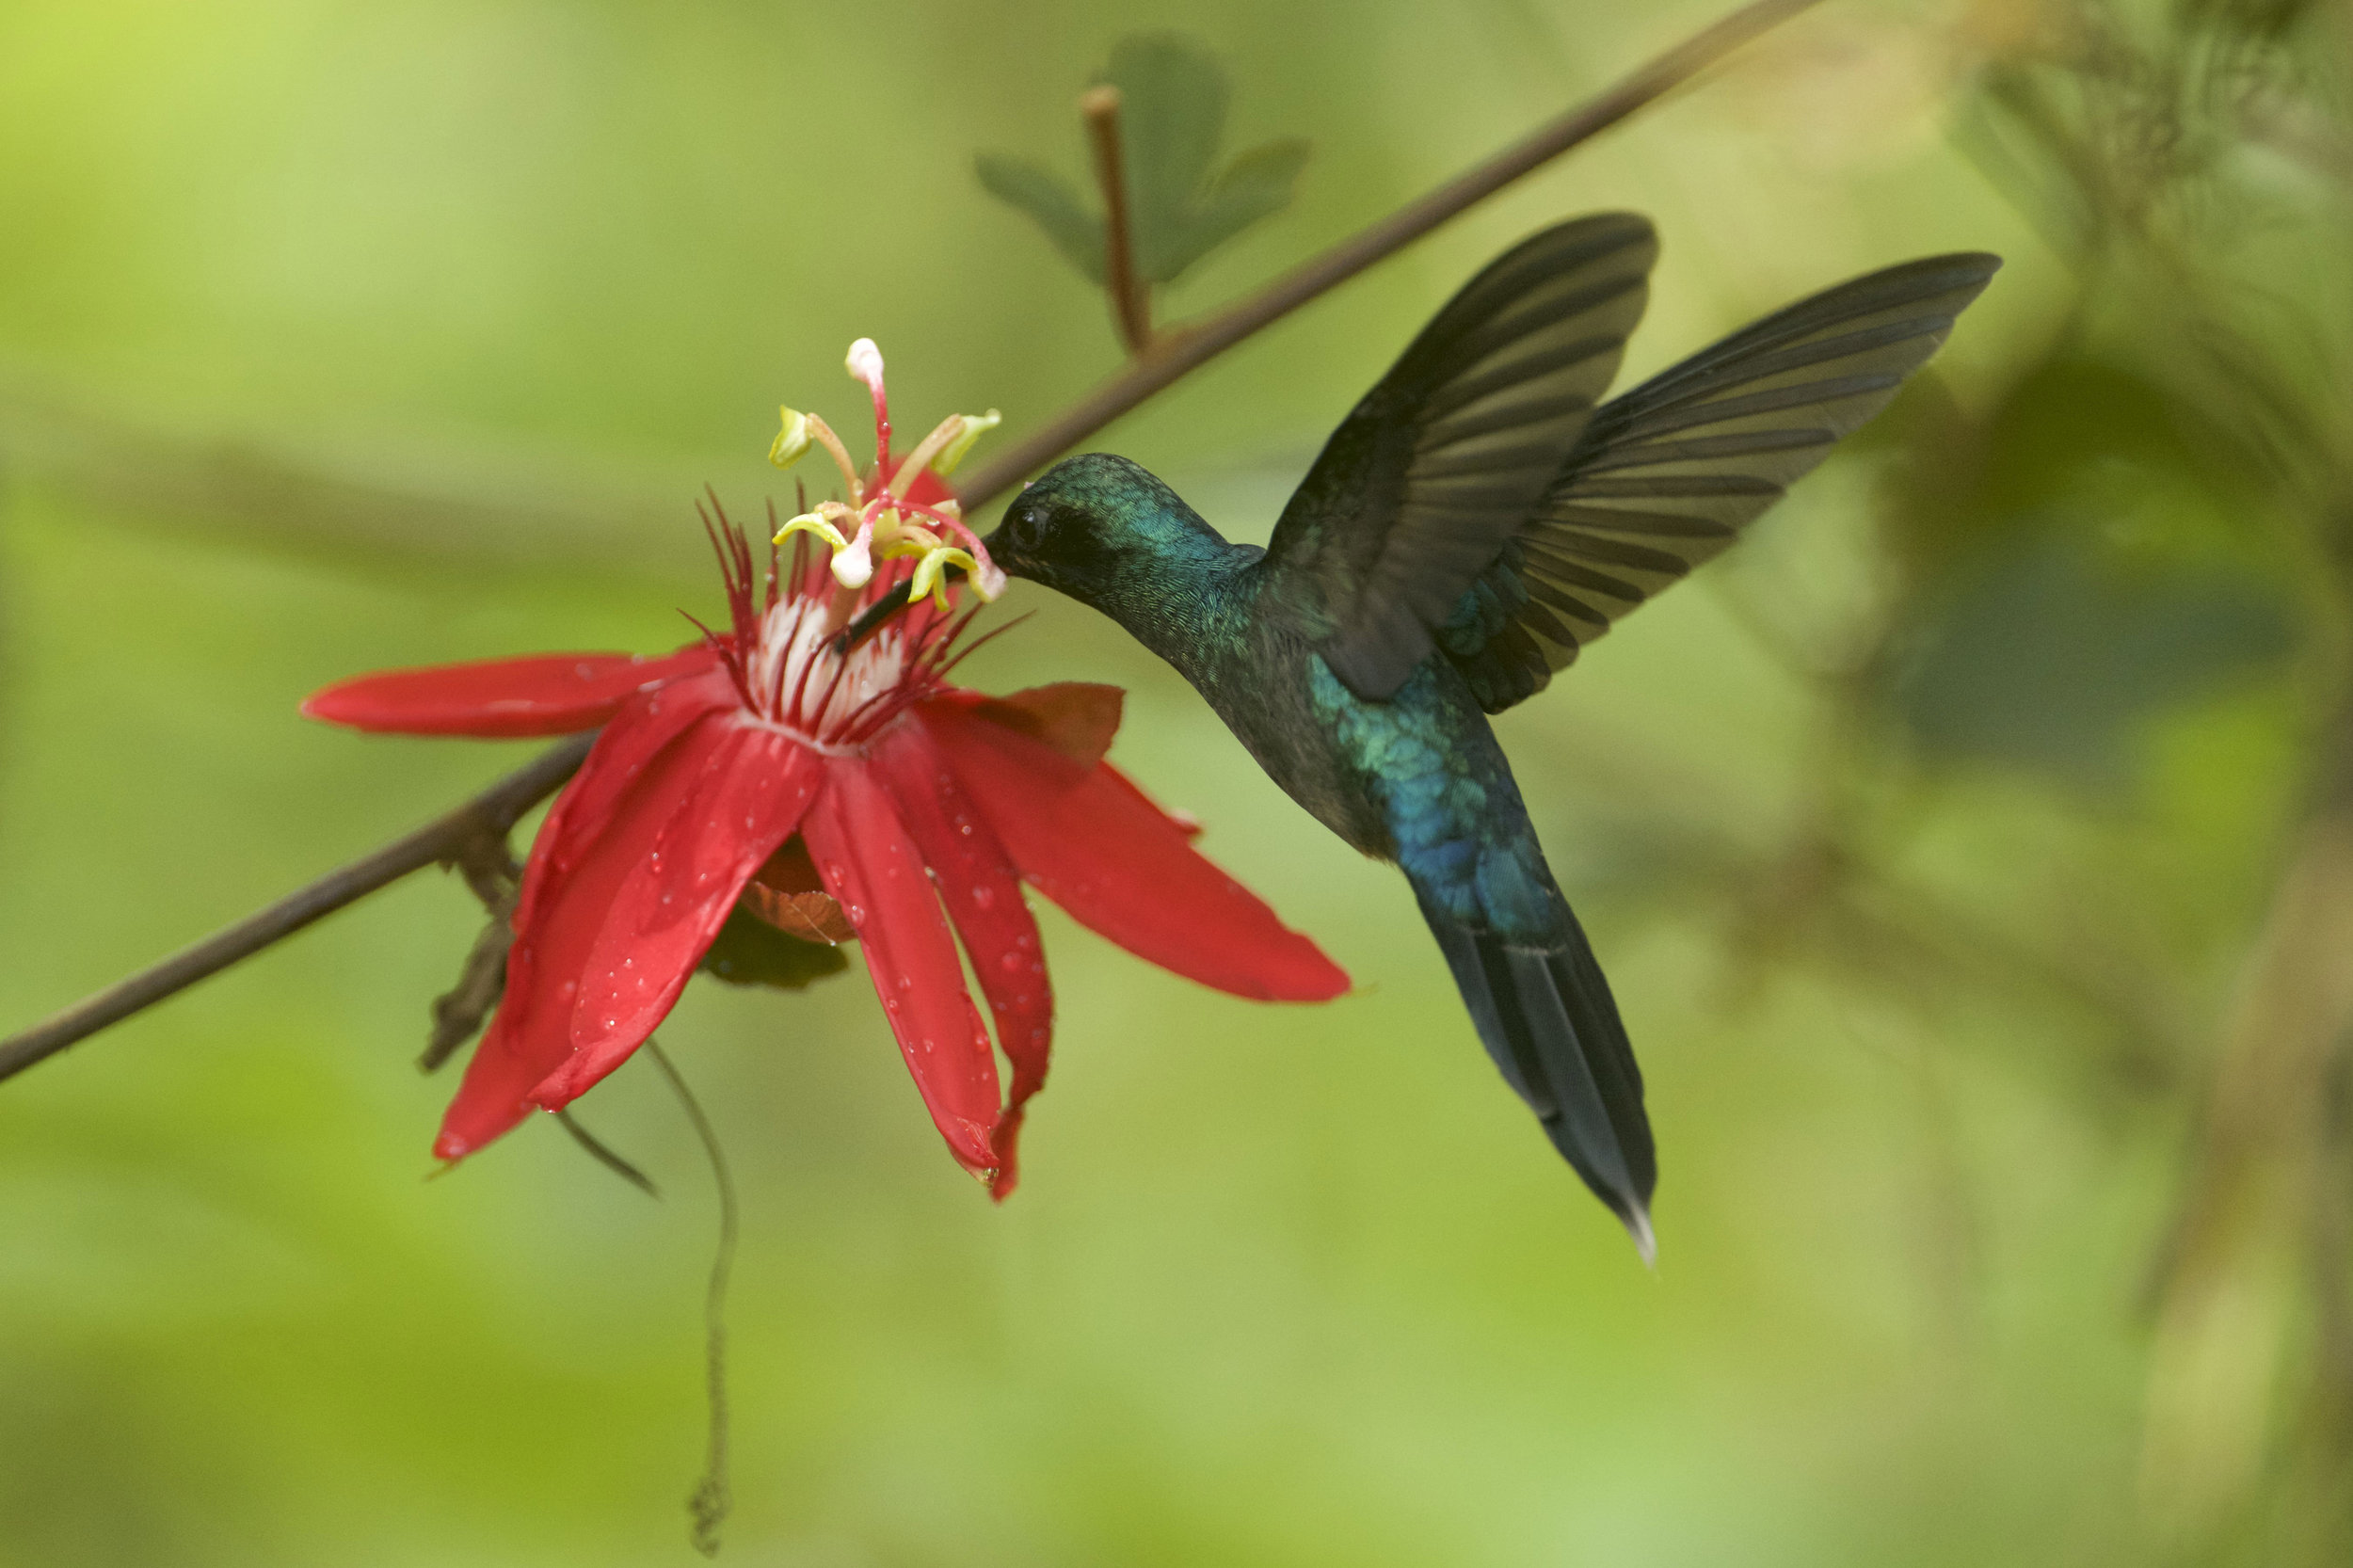 (Foto - Randall Ortega Chavez) A local hummingbird feeds off of the nectar of this tropical flower.